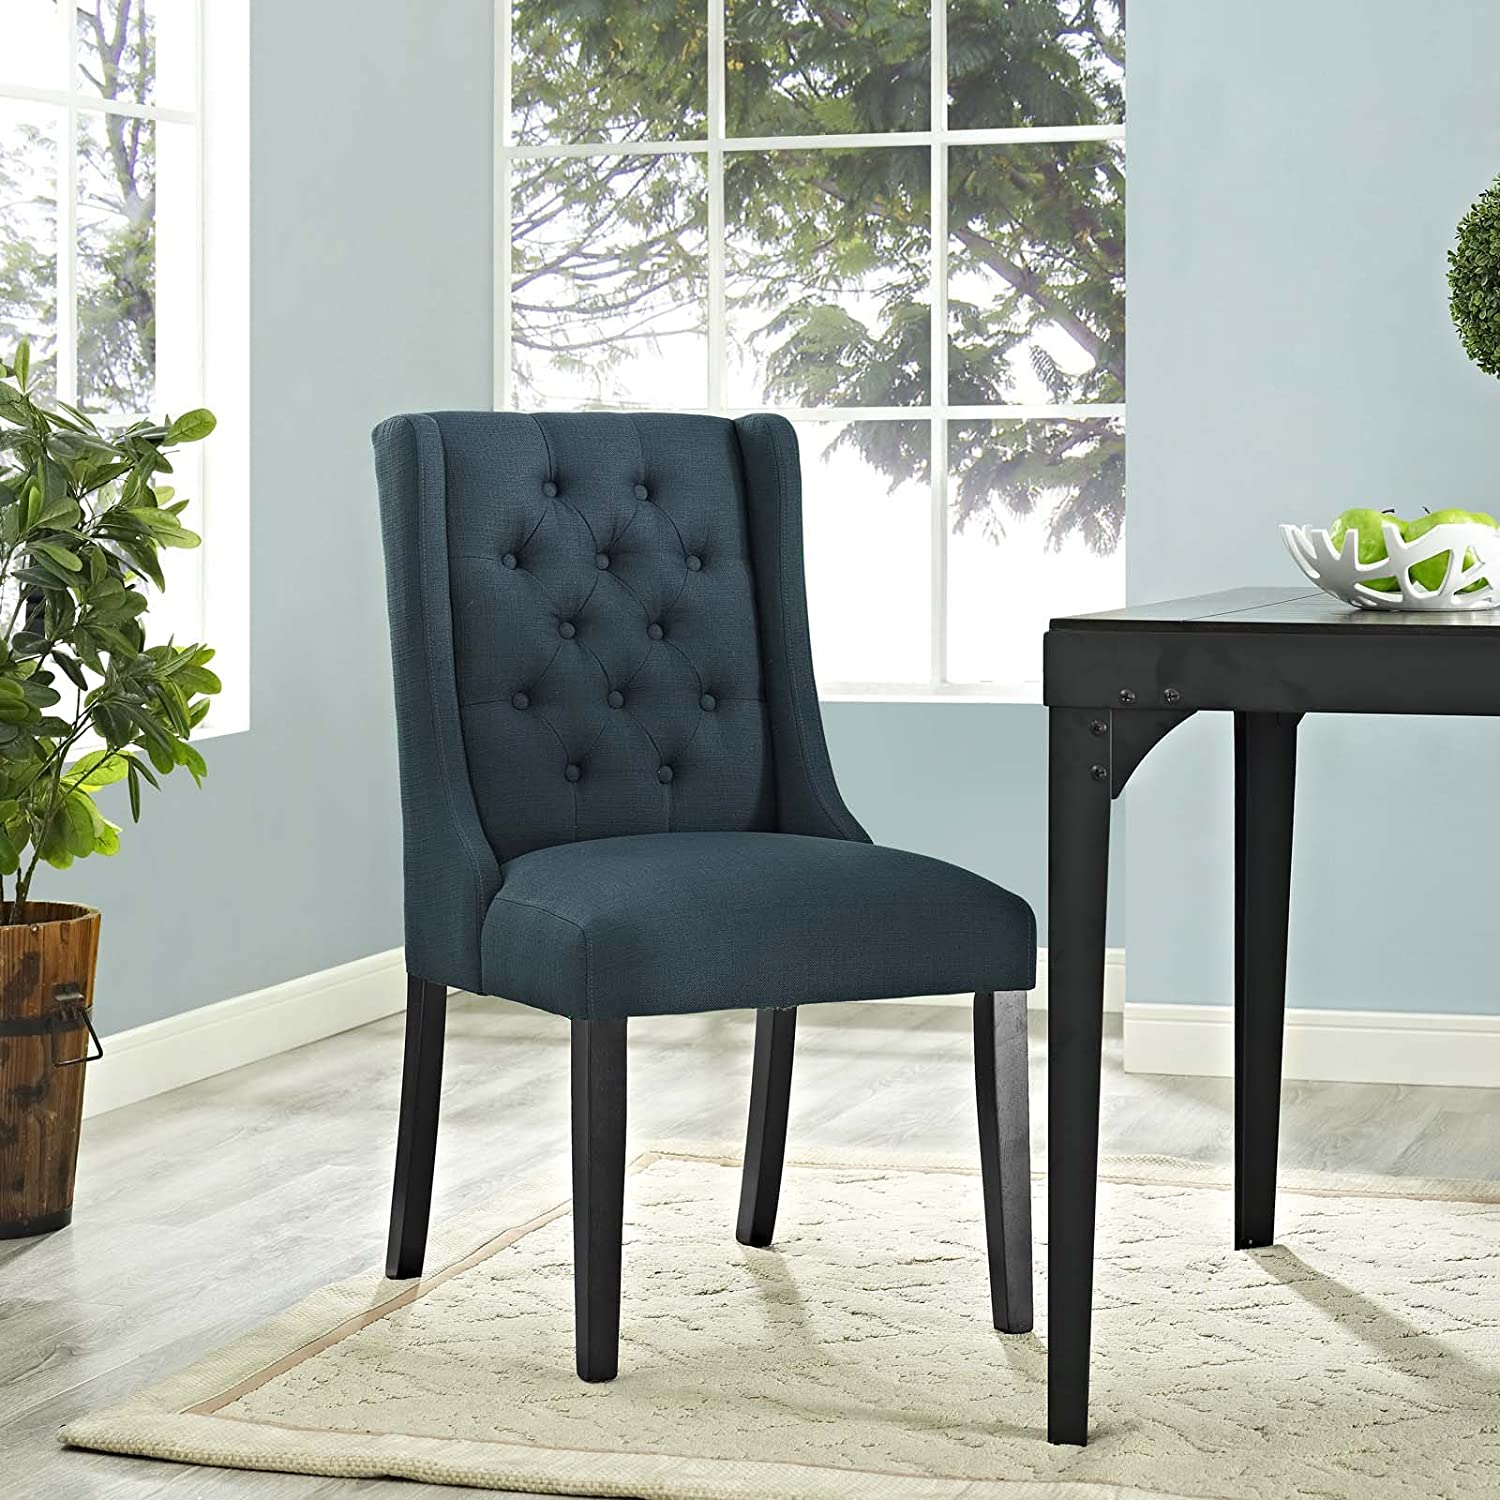 Modway Baronet Modern Tufted Upholstered Fabric Parsons Kitchen and Dining  Room Chair in Azure